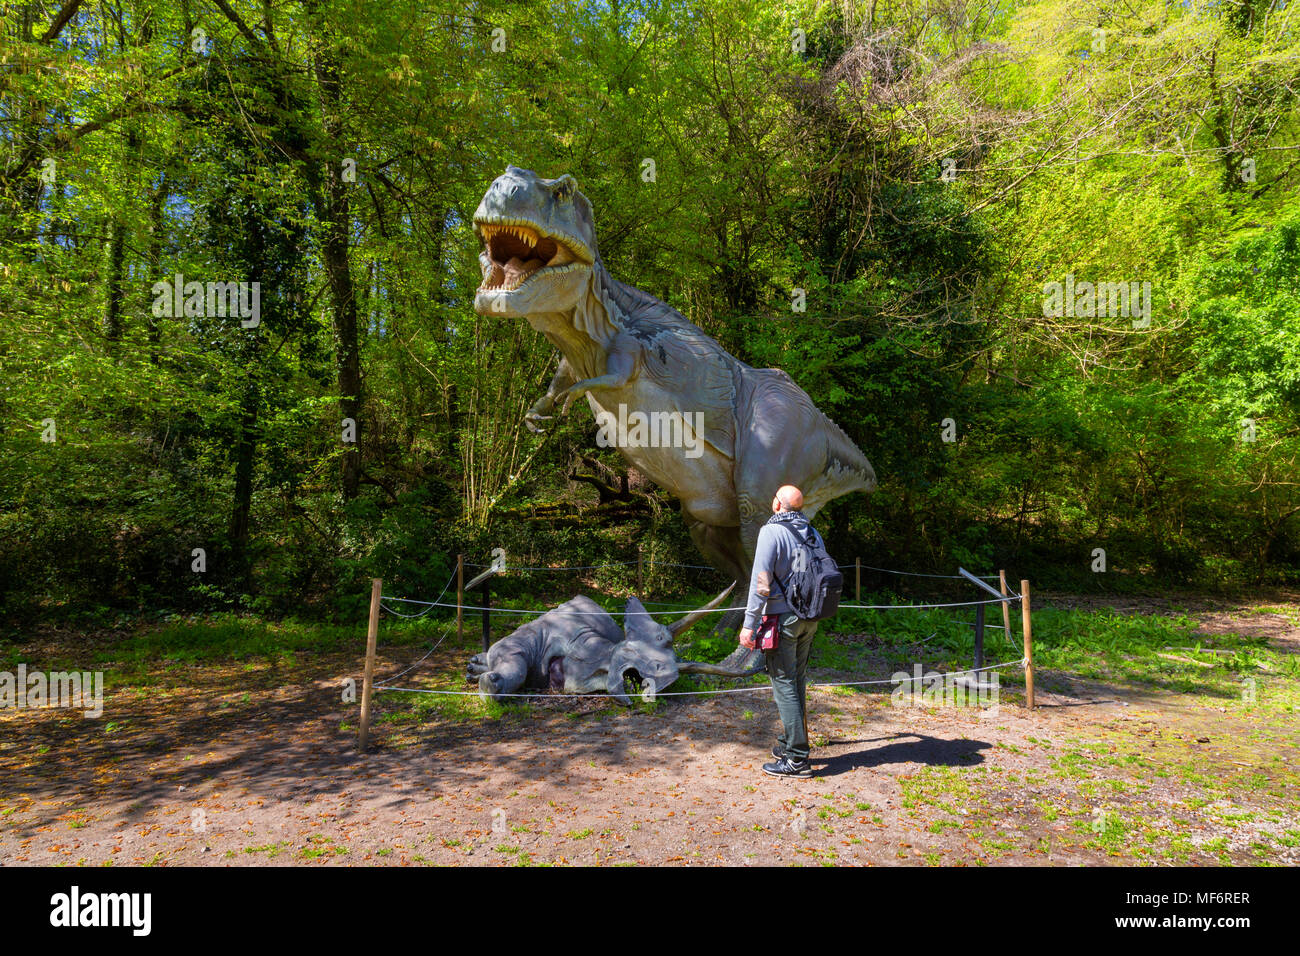 Naples (Italy) - The Cratere degli Astroni Nature Reserve is one of the few well-preserved craters of the whole Phlegraean fields. The dinosaurs creat - Stock Image